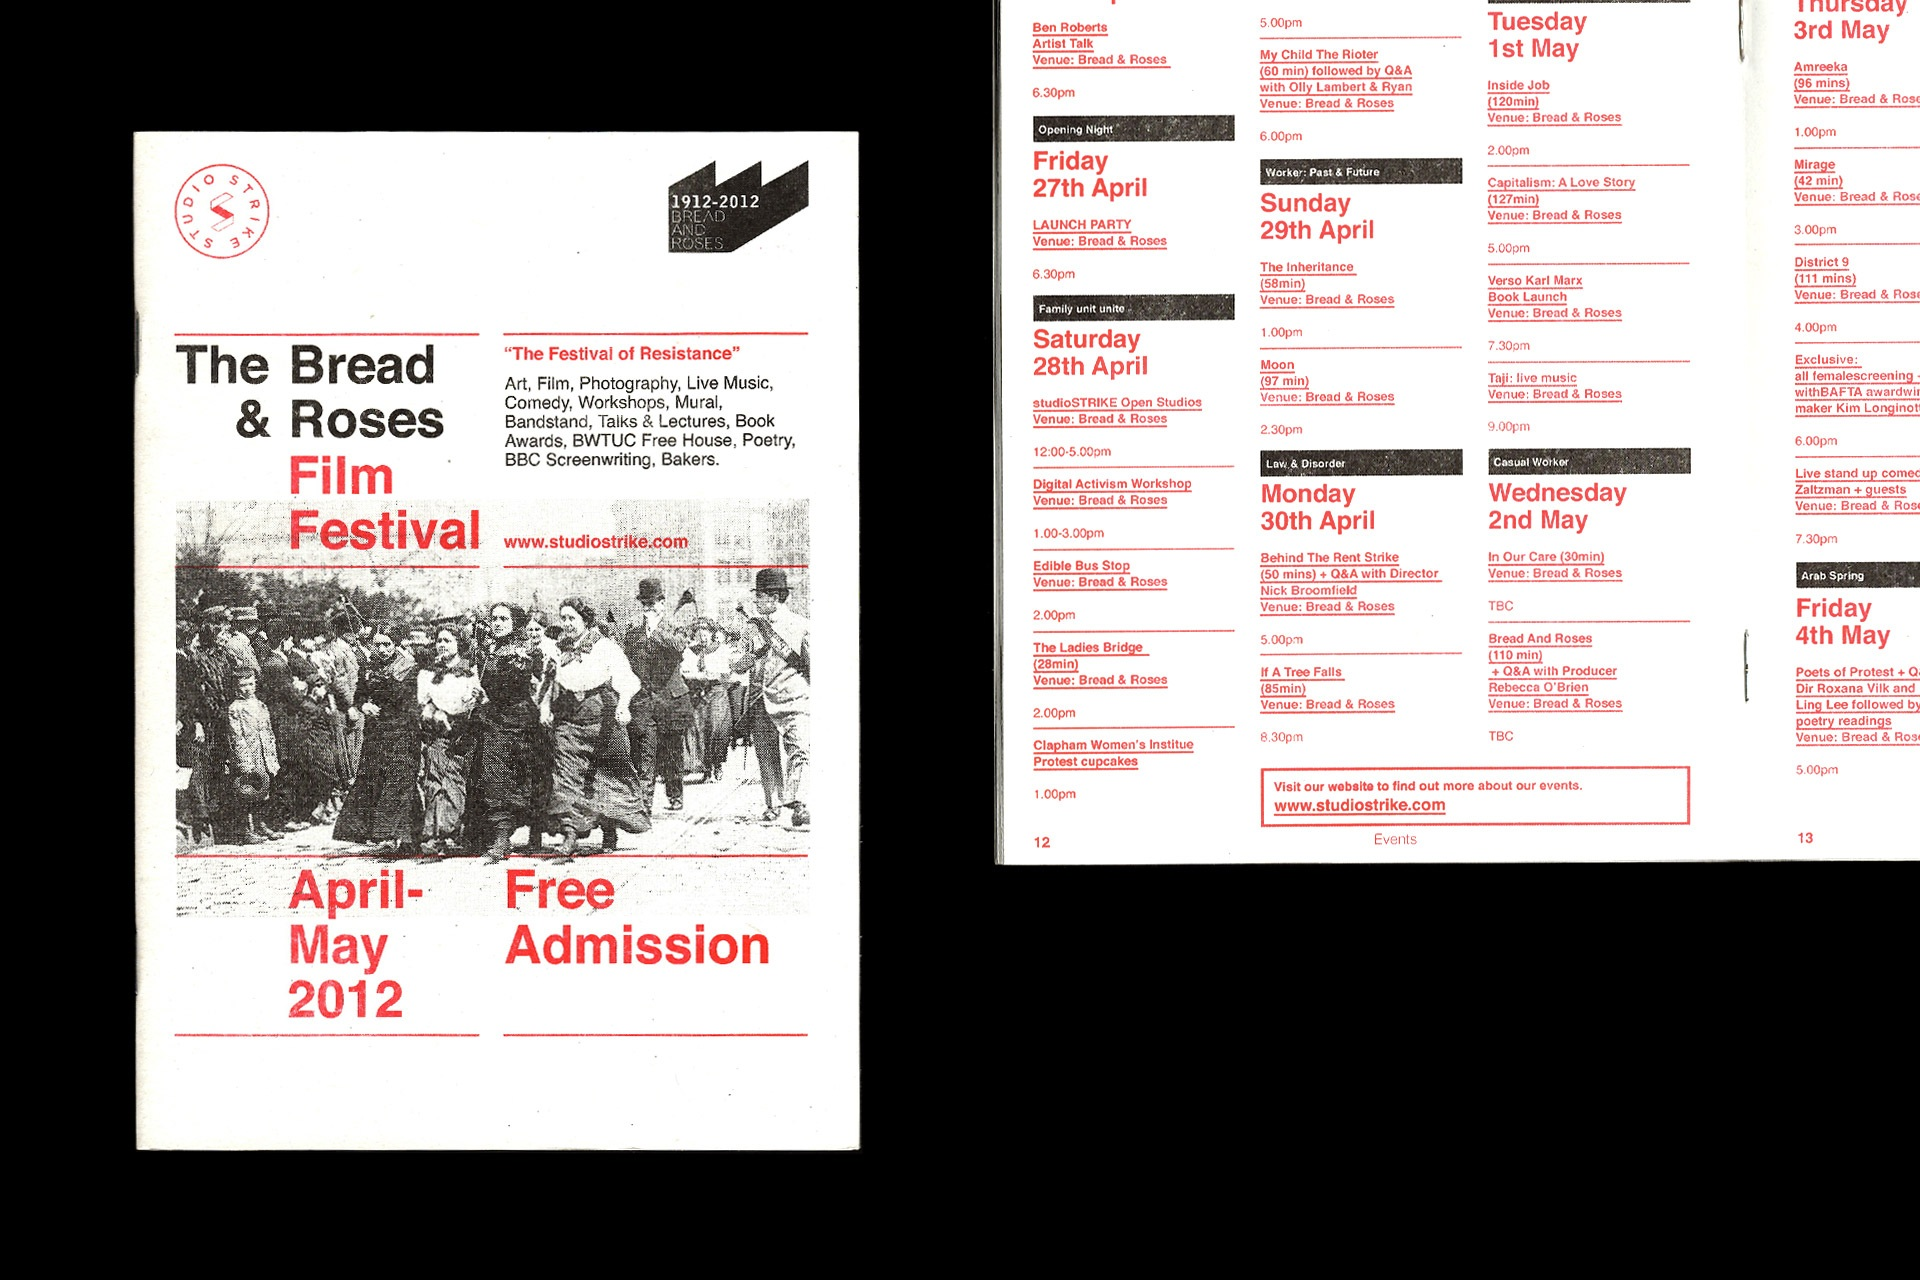 Risograph black and red programme for The Bread & Roses Film Festival